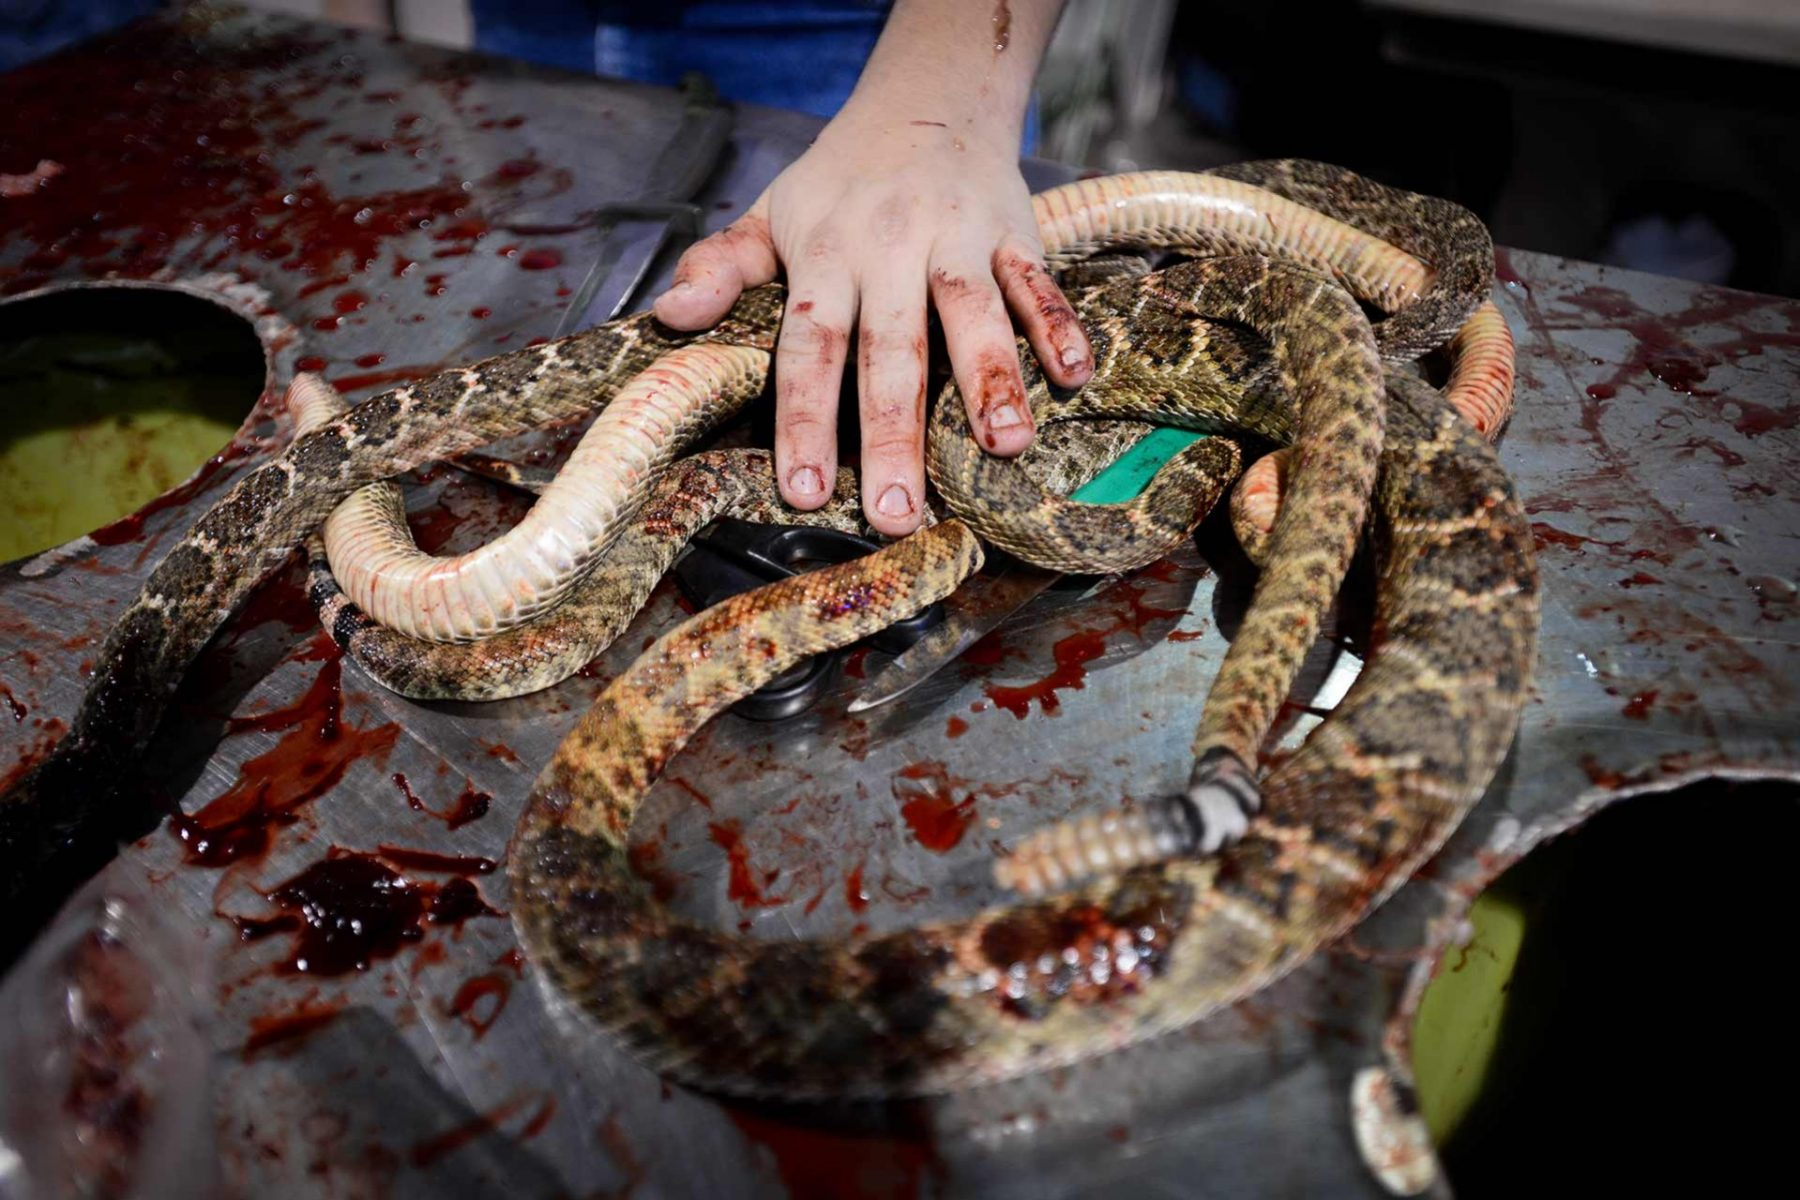 Dead rattlesnakes at the Sweetwater Rattlesnake Roundup in Texas. USA, 2015